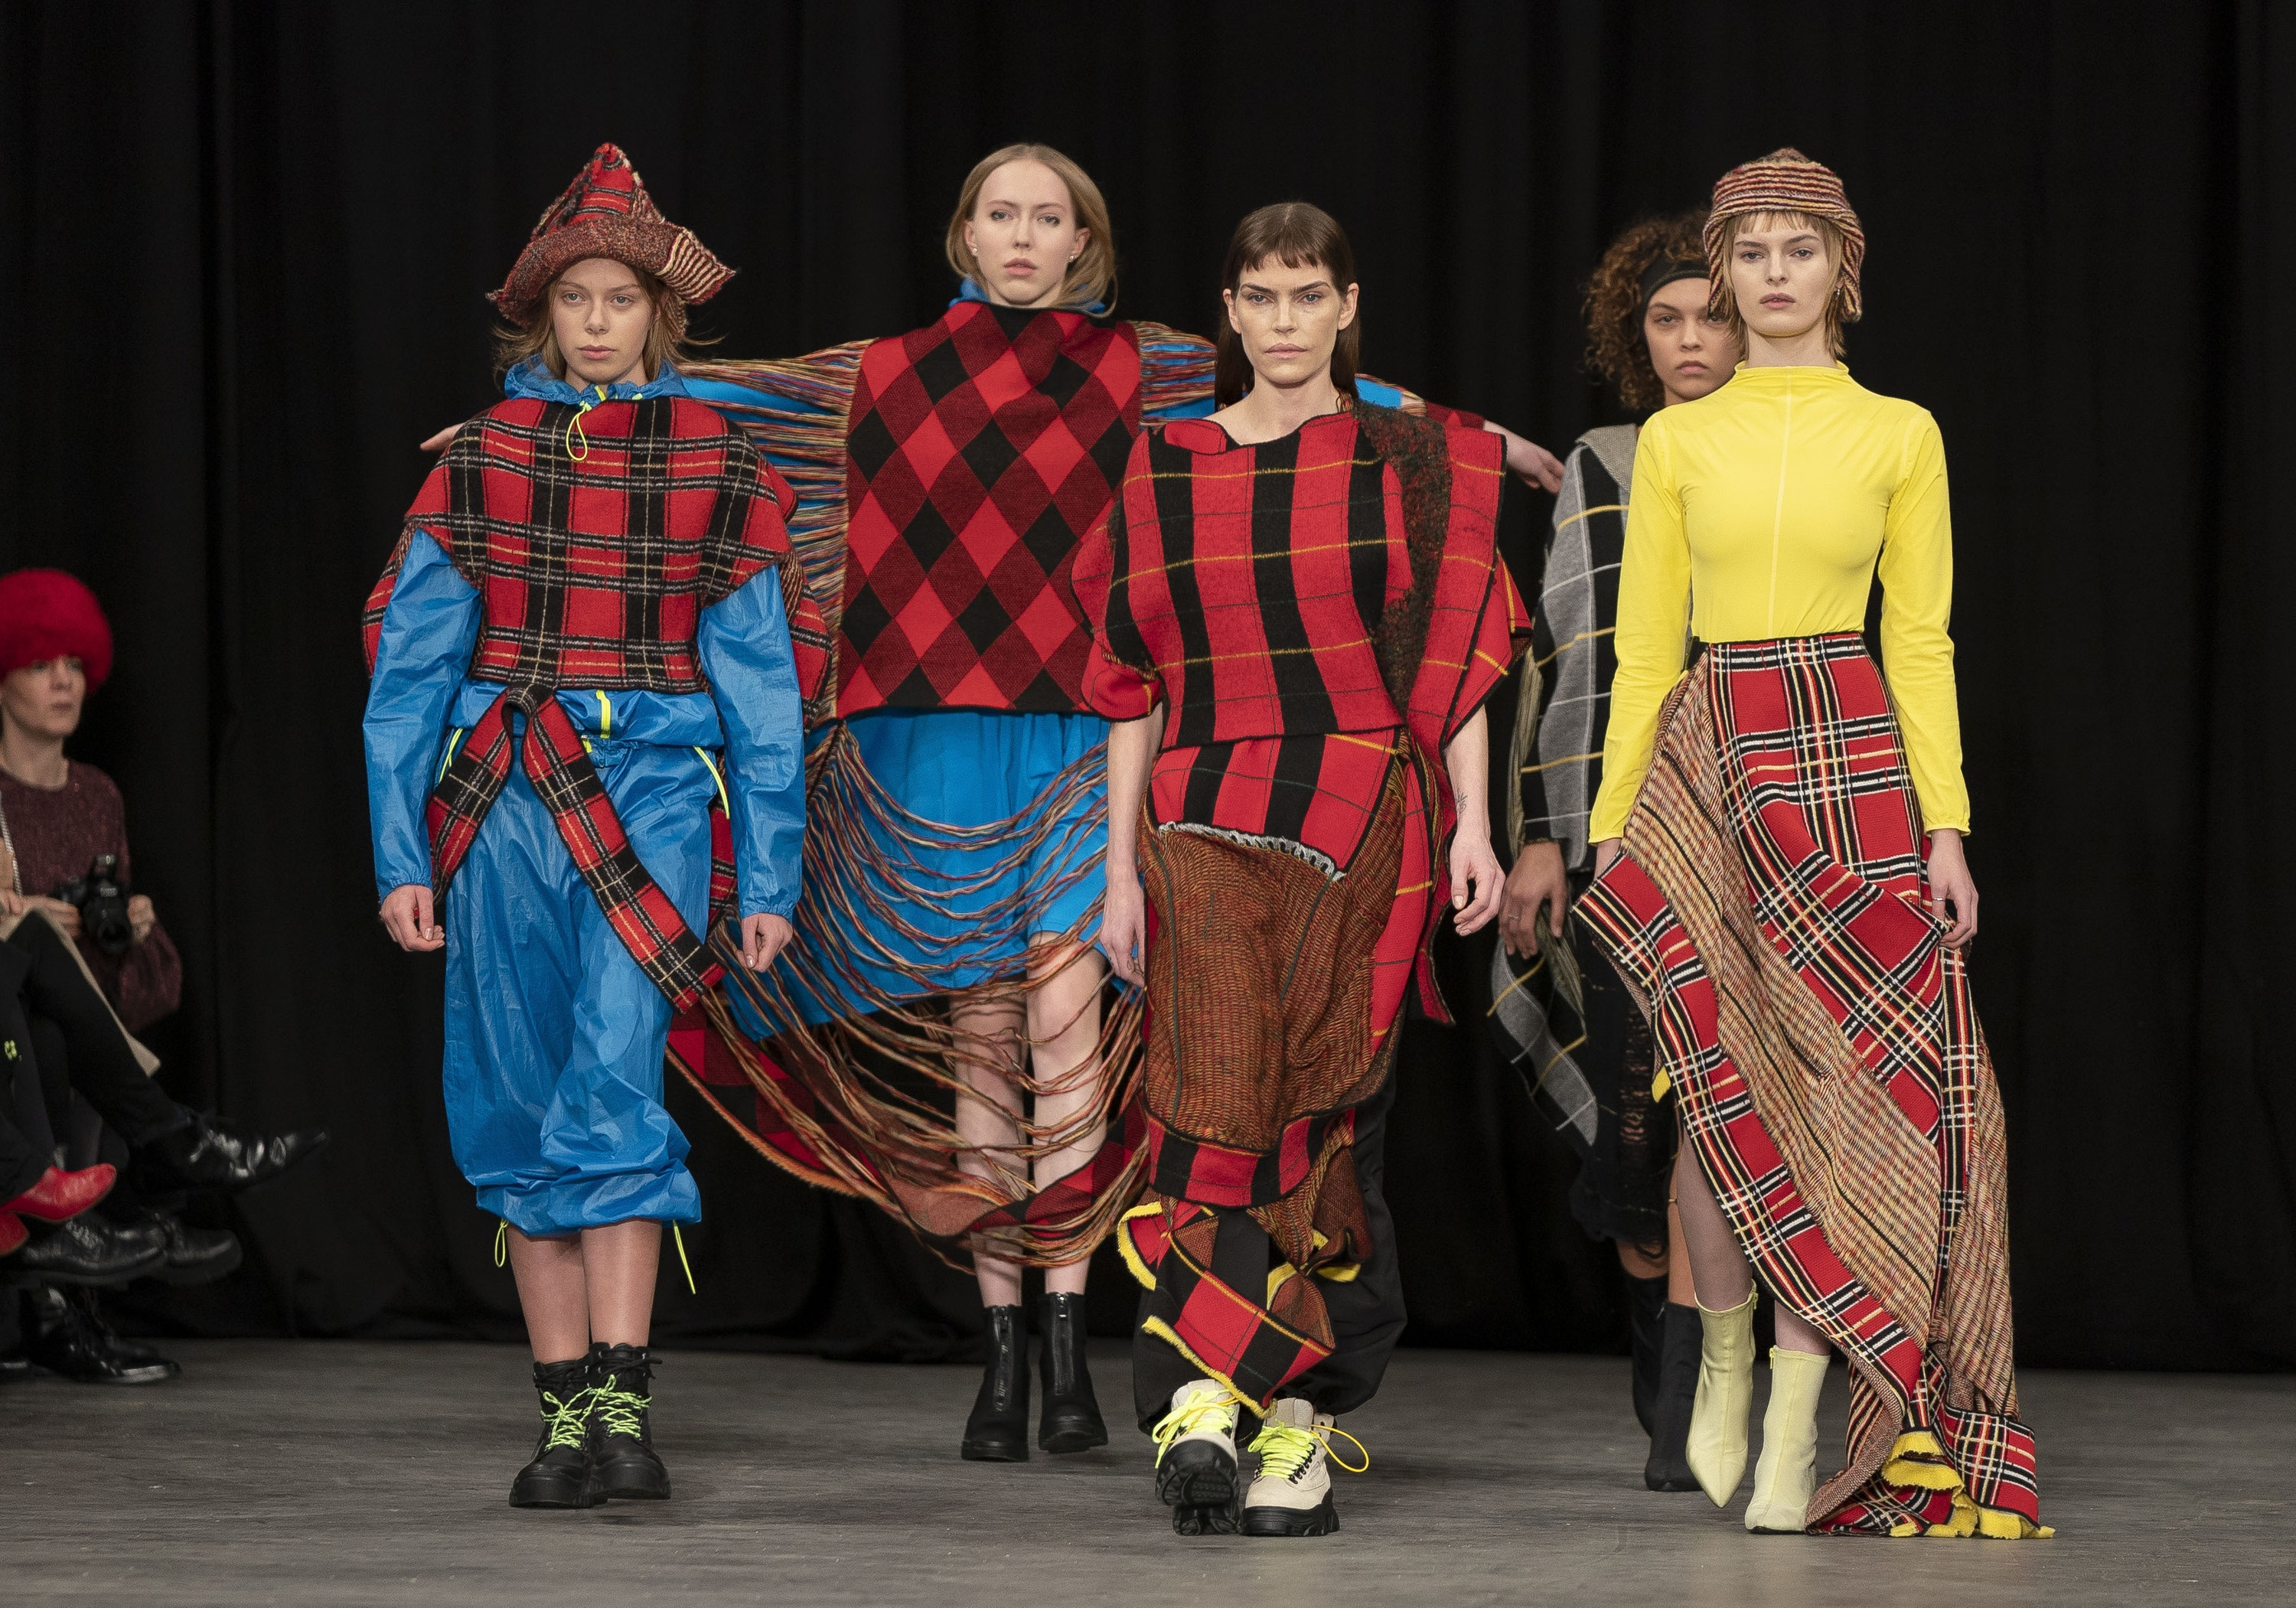 Models on the catwalk during the first day of Copenhagen Fashion Week